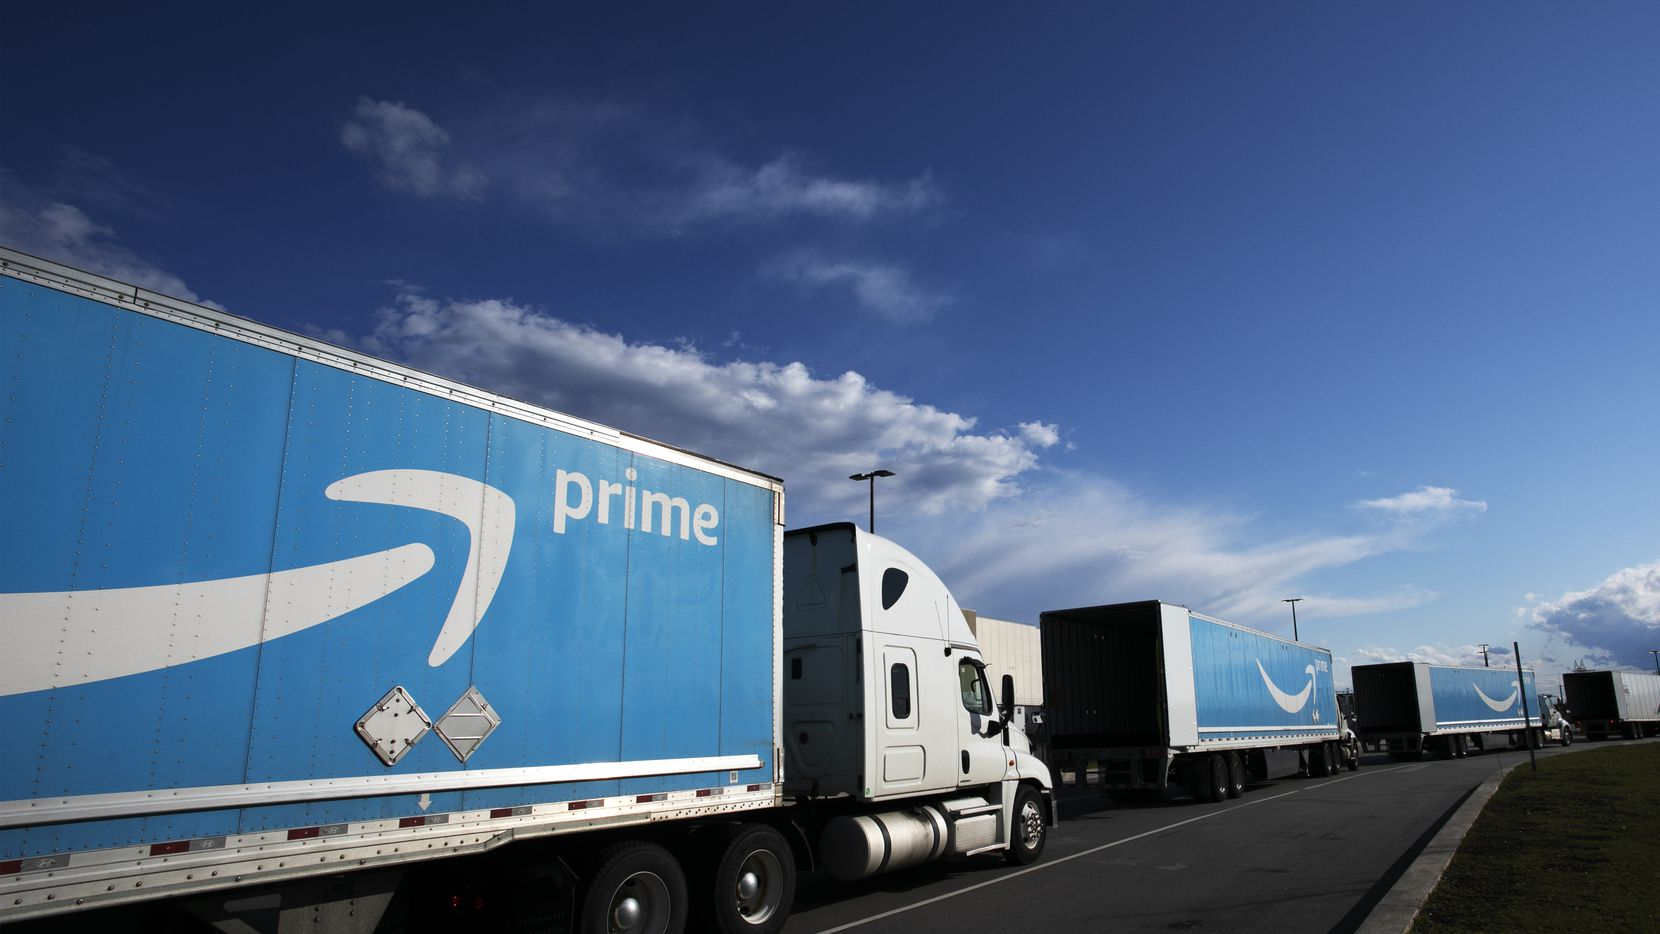 This 2020 file photo shows Amazon tractor trailers lined up outside the Amazon Fulfillment Center in the Staten Island borough of New York.  The District of Columbia has sued Amazon Tuesday, accusing the online retail giant of illegal anticompetitive practices in its treatment of sellers on its platform.